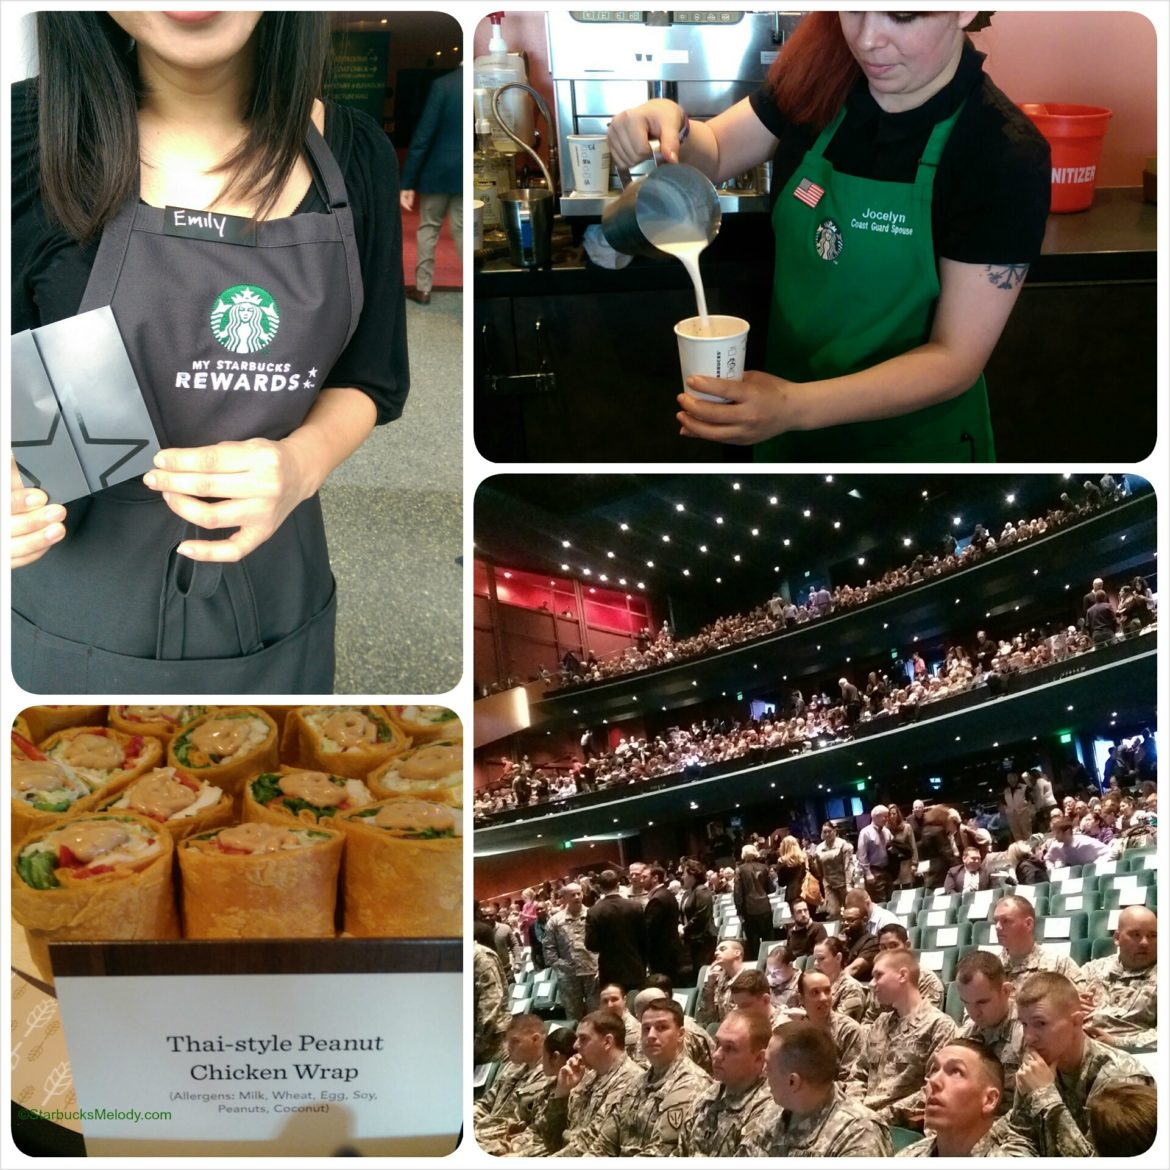 Starbucks Annual Meeting: New Food; Common; Mellody Hobson and More.